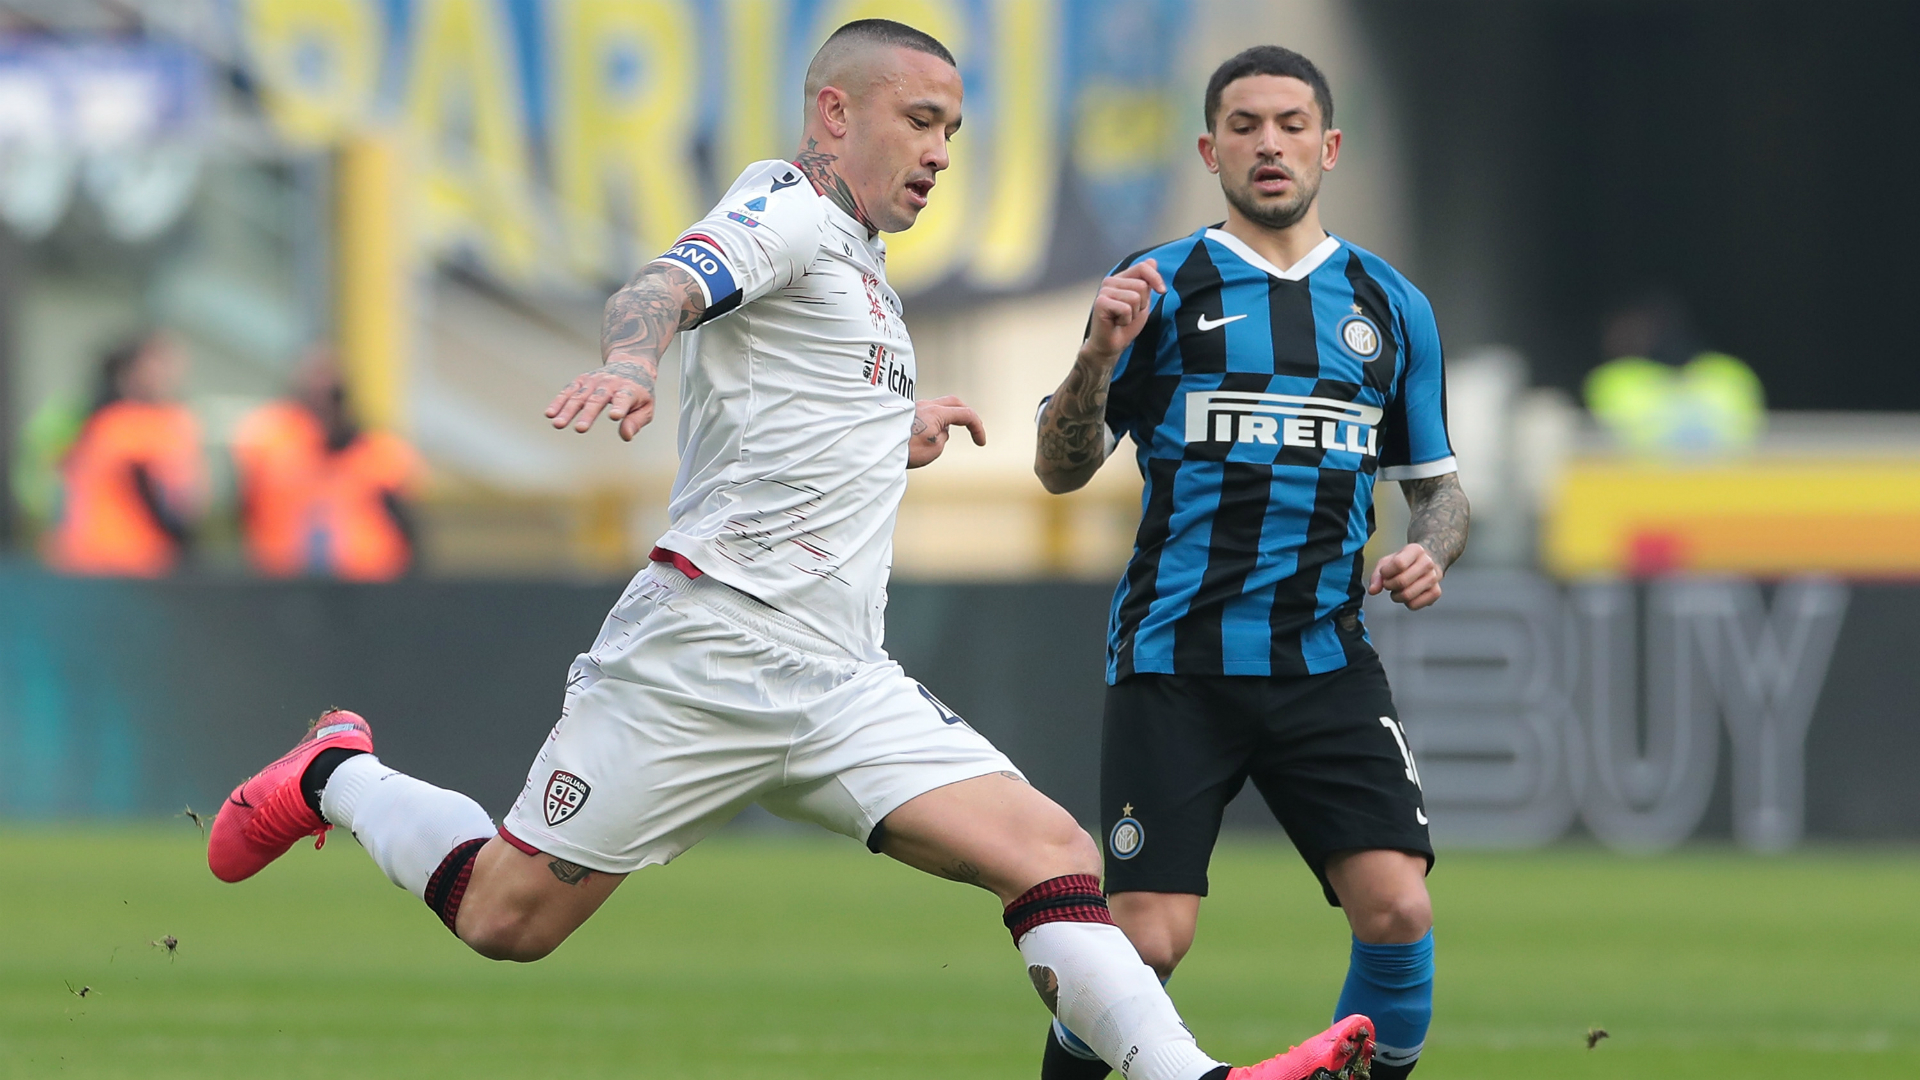 Inter 1-1 Cagliari: Nainggolan denies parent club as Martinez sees red for strop